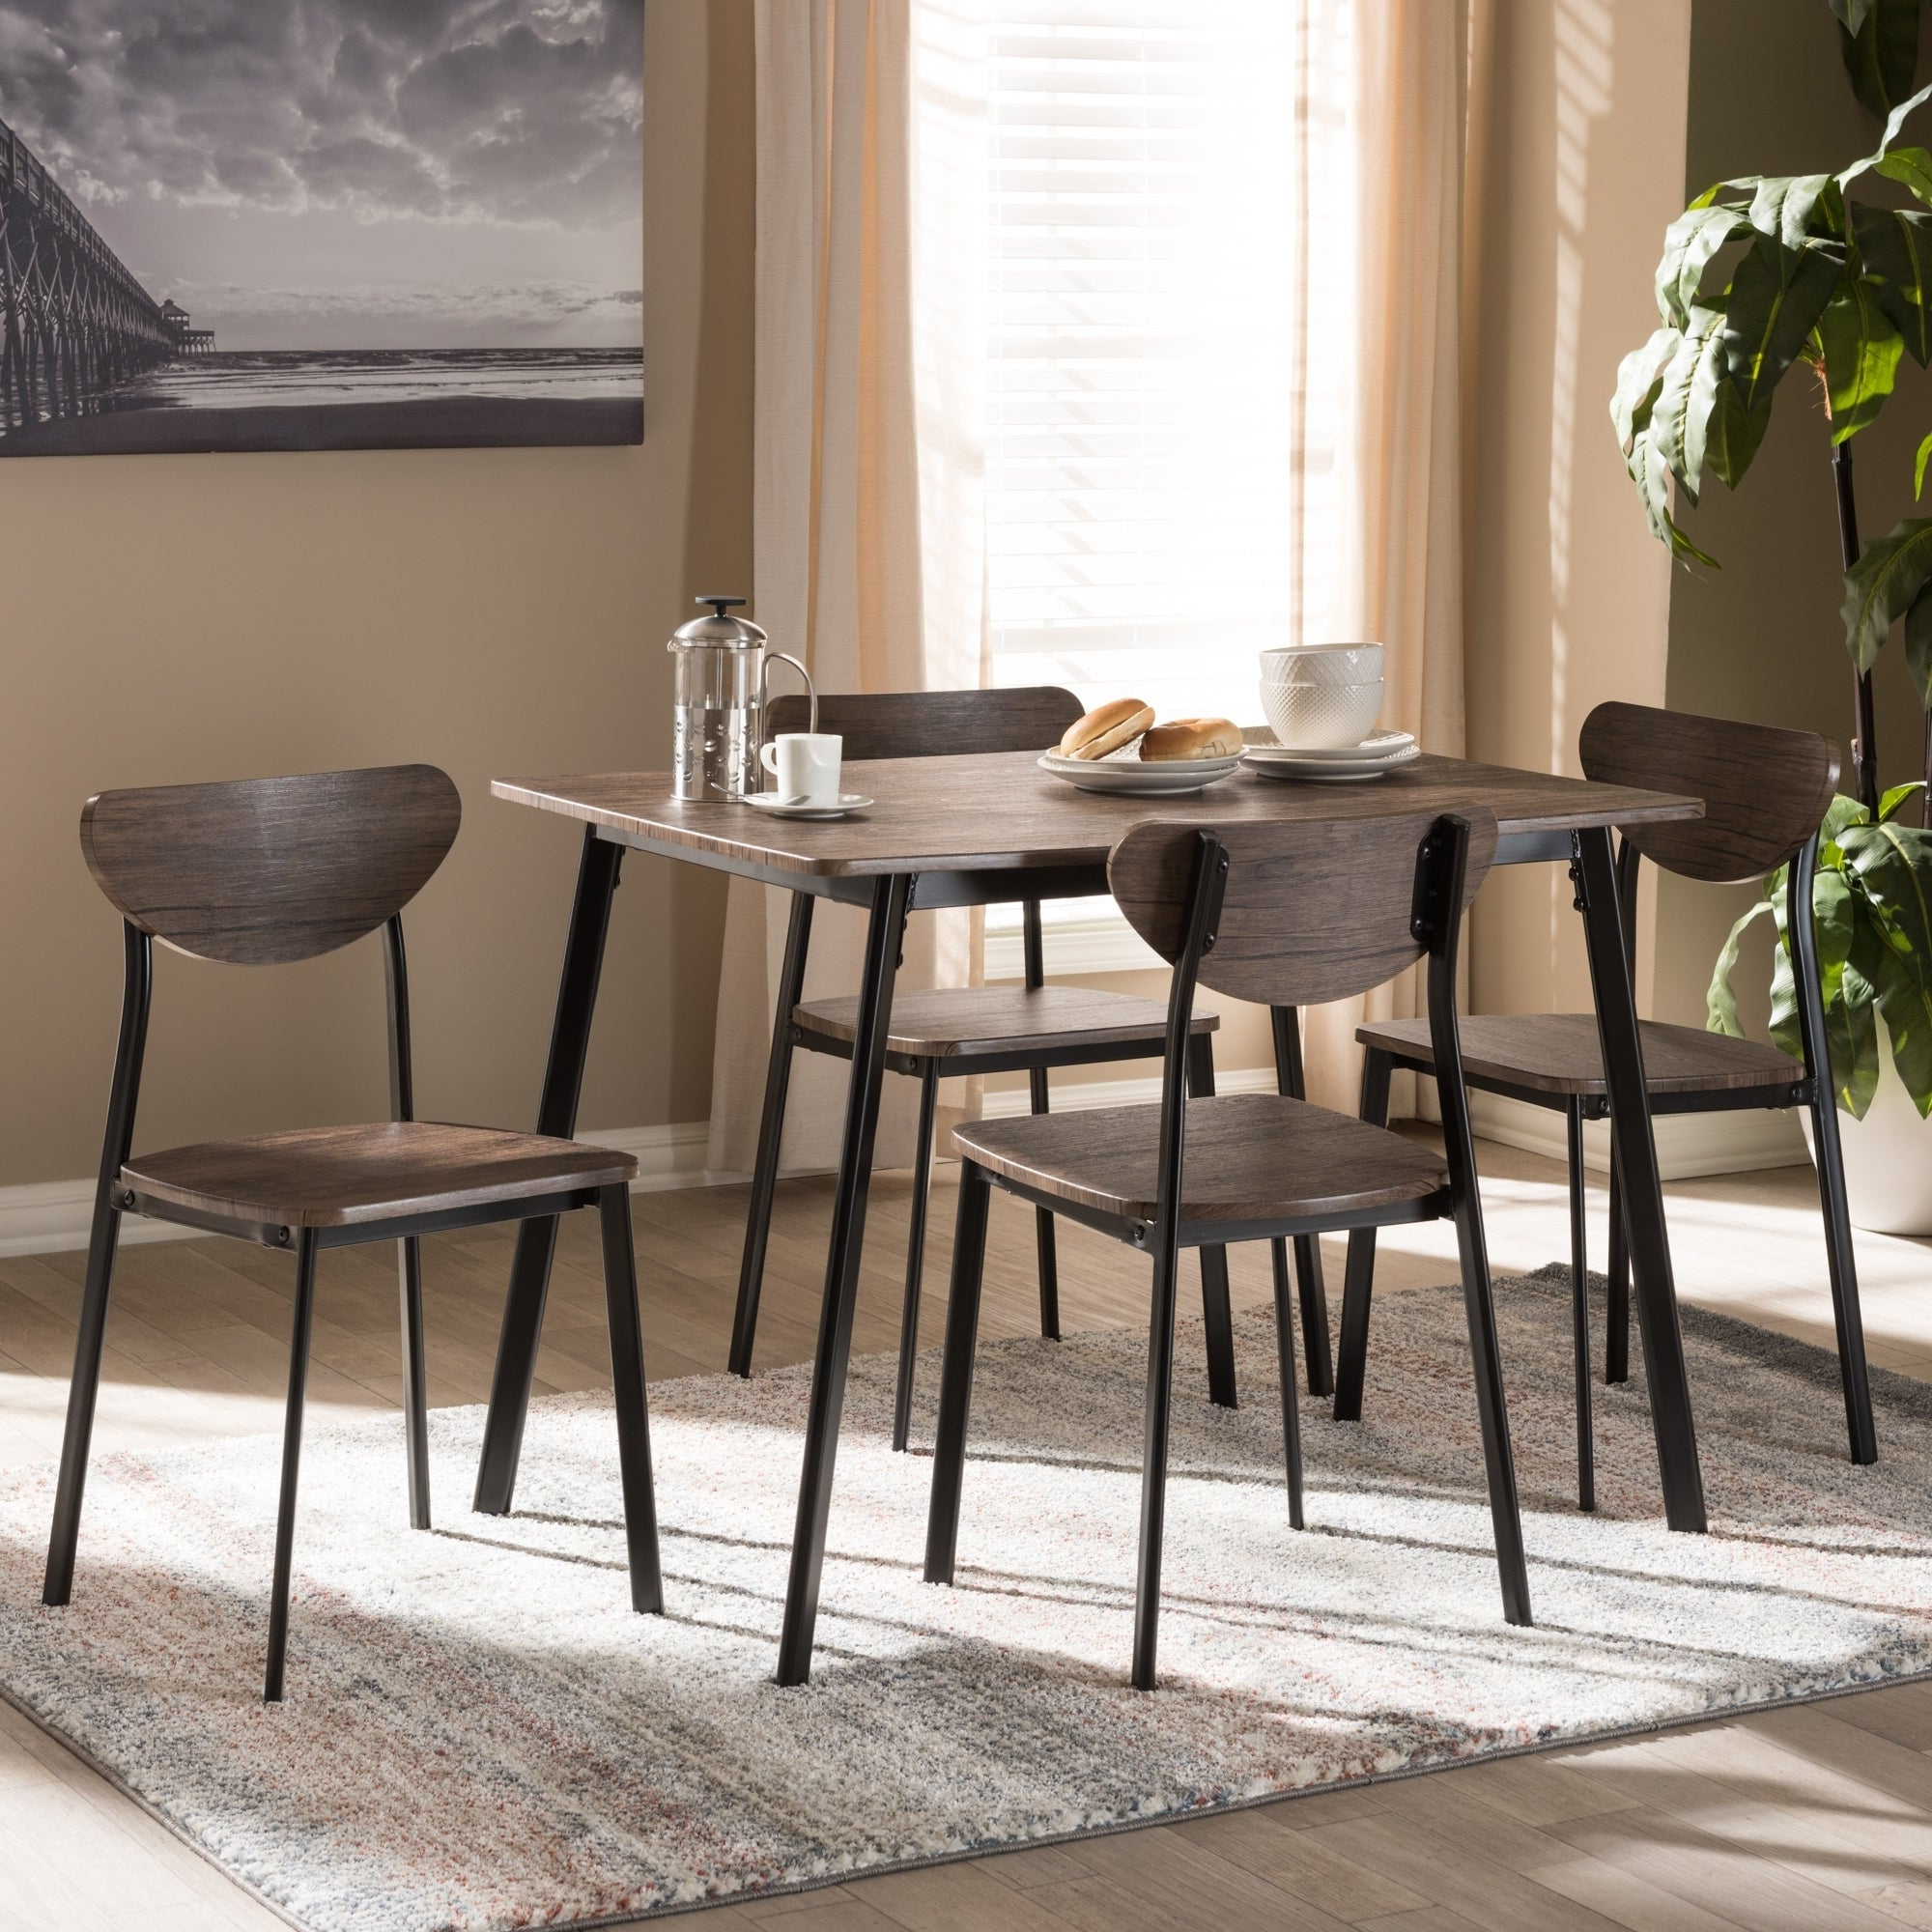 West Hill Family Table 3 Piece Dining Sets With Newest Buy 5 Piece Sets Kitchen & Dining Room Sets Online At Overstock (View 9 of 25)